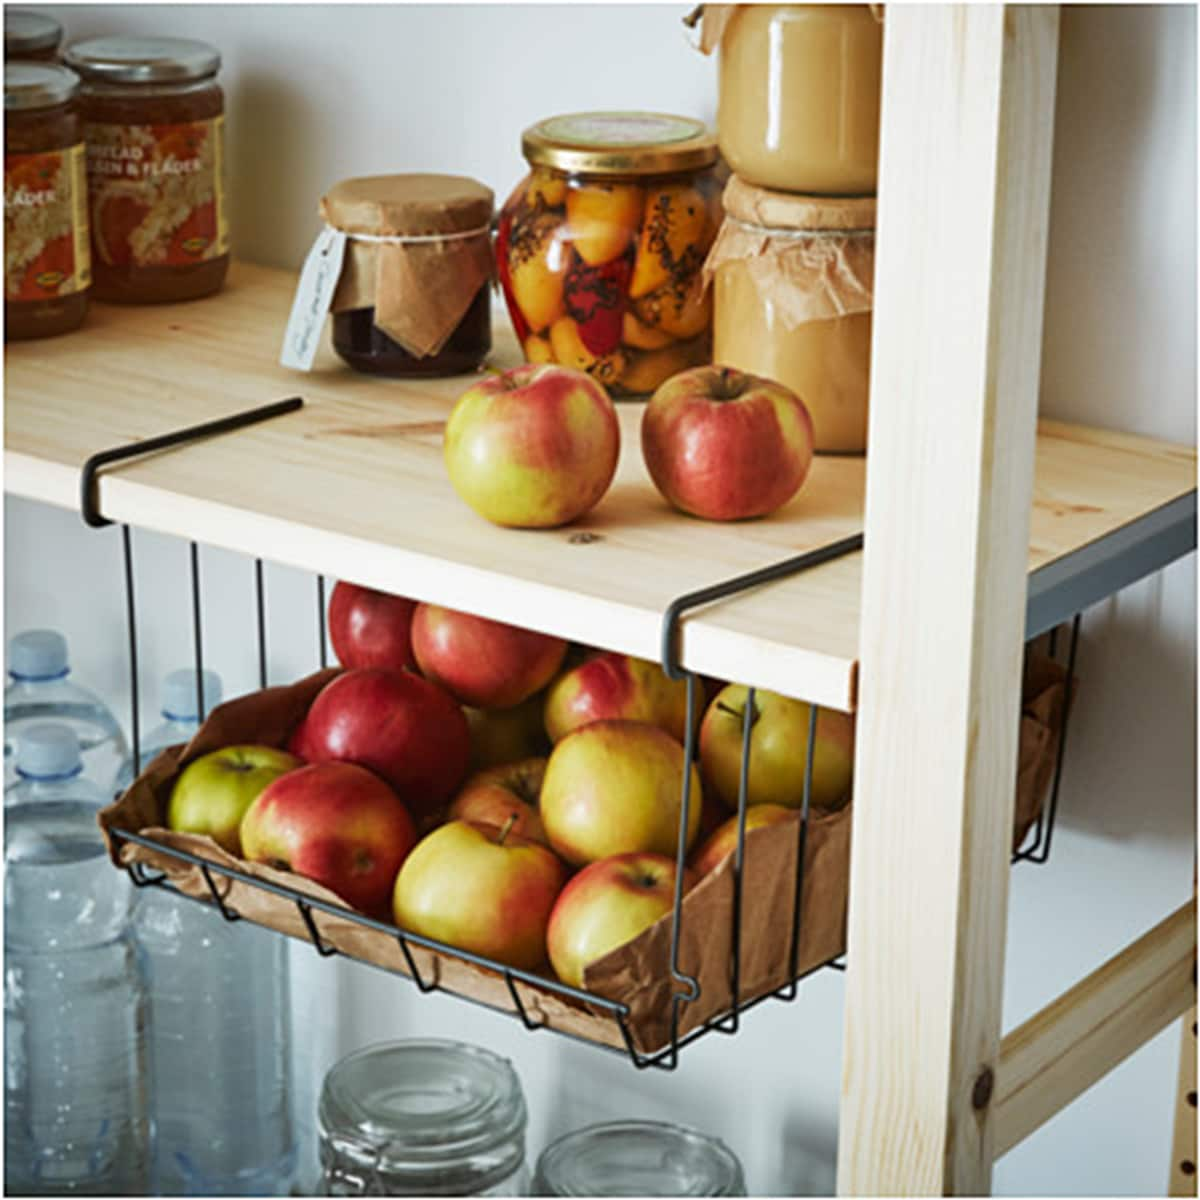 Beyond RASKOG: 8 Pantry-Organizing Products from IKEA For $10 or Less: gallery image 2